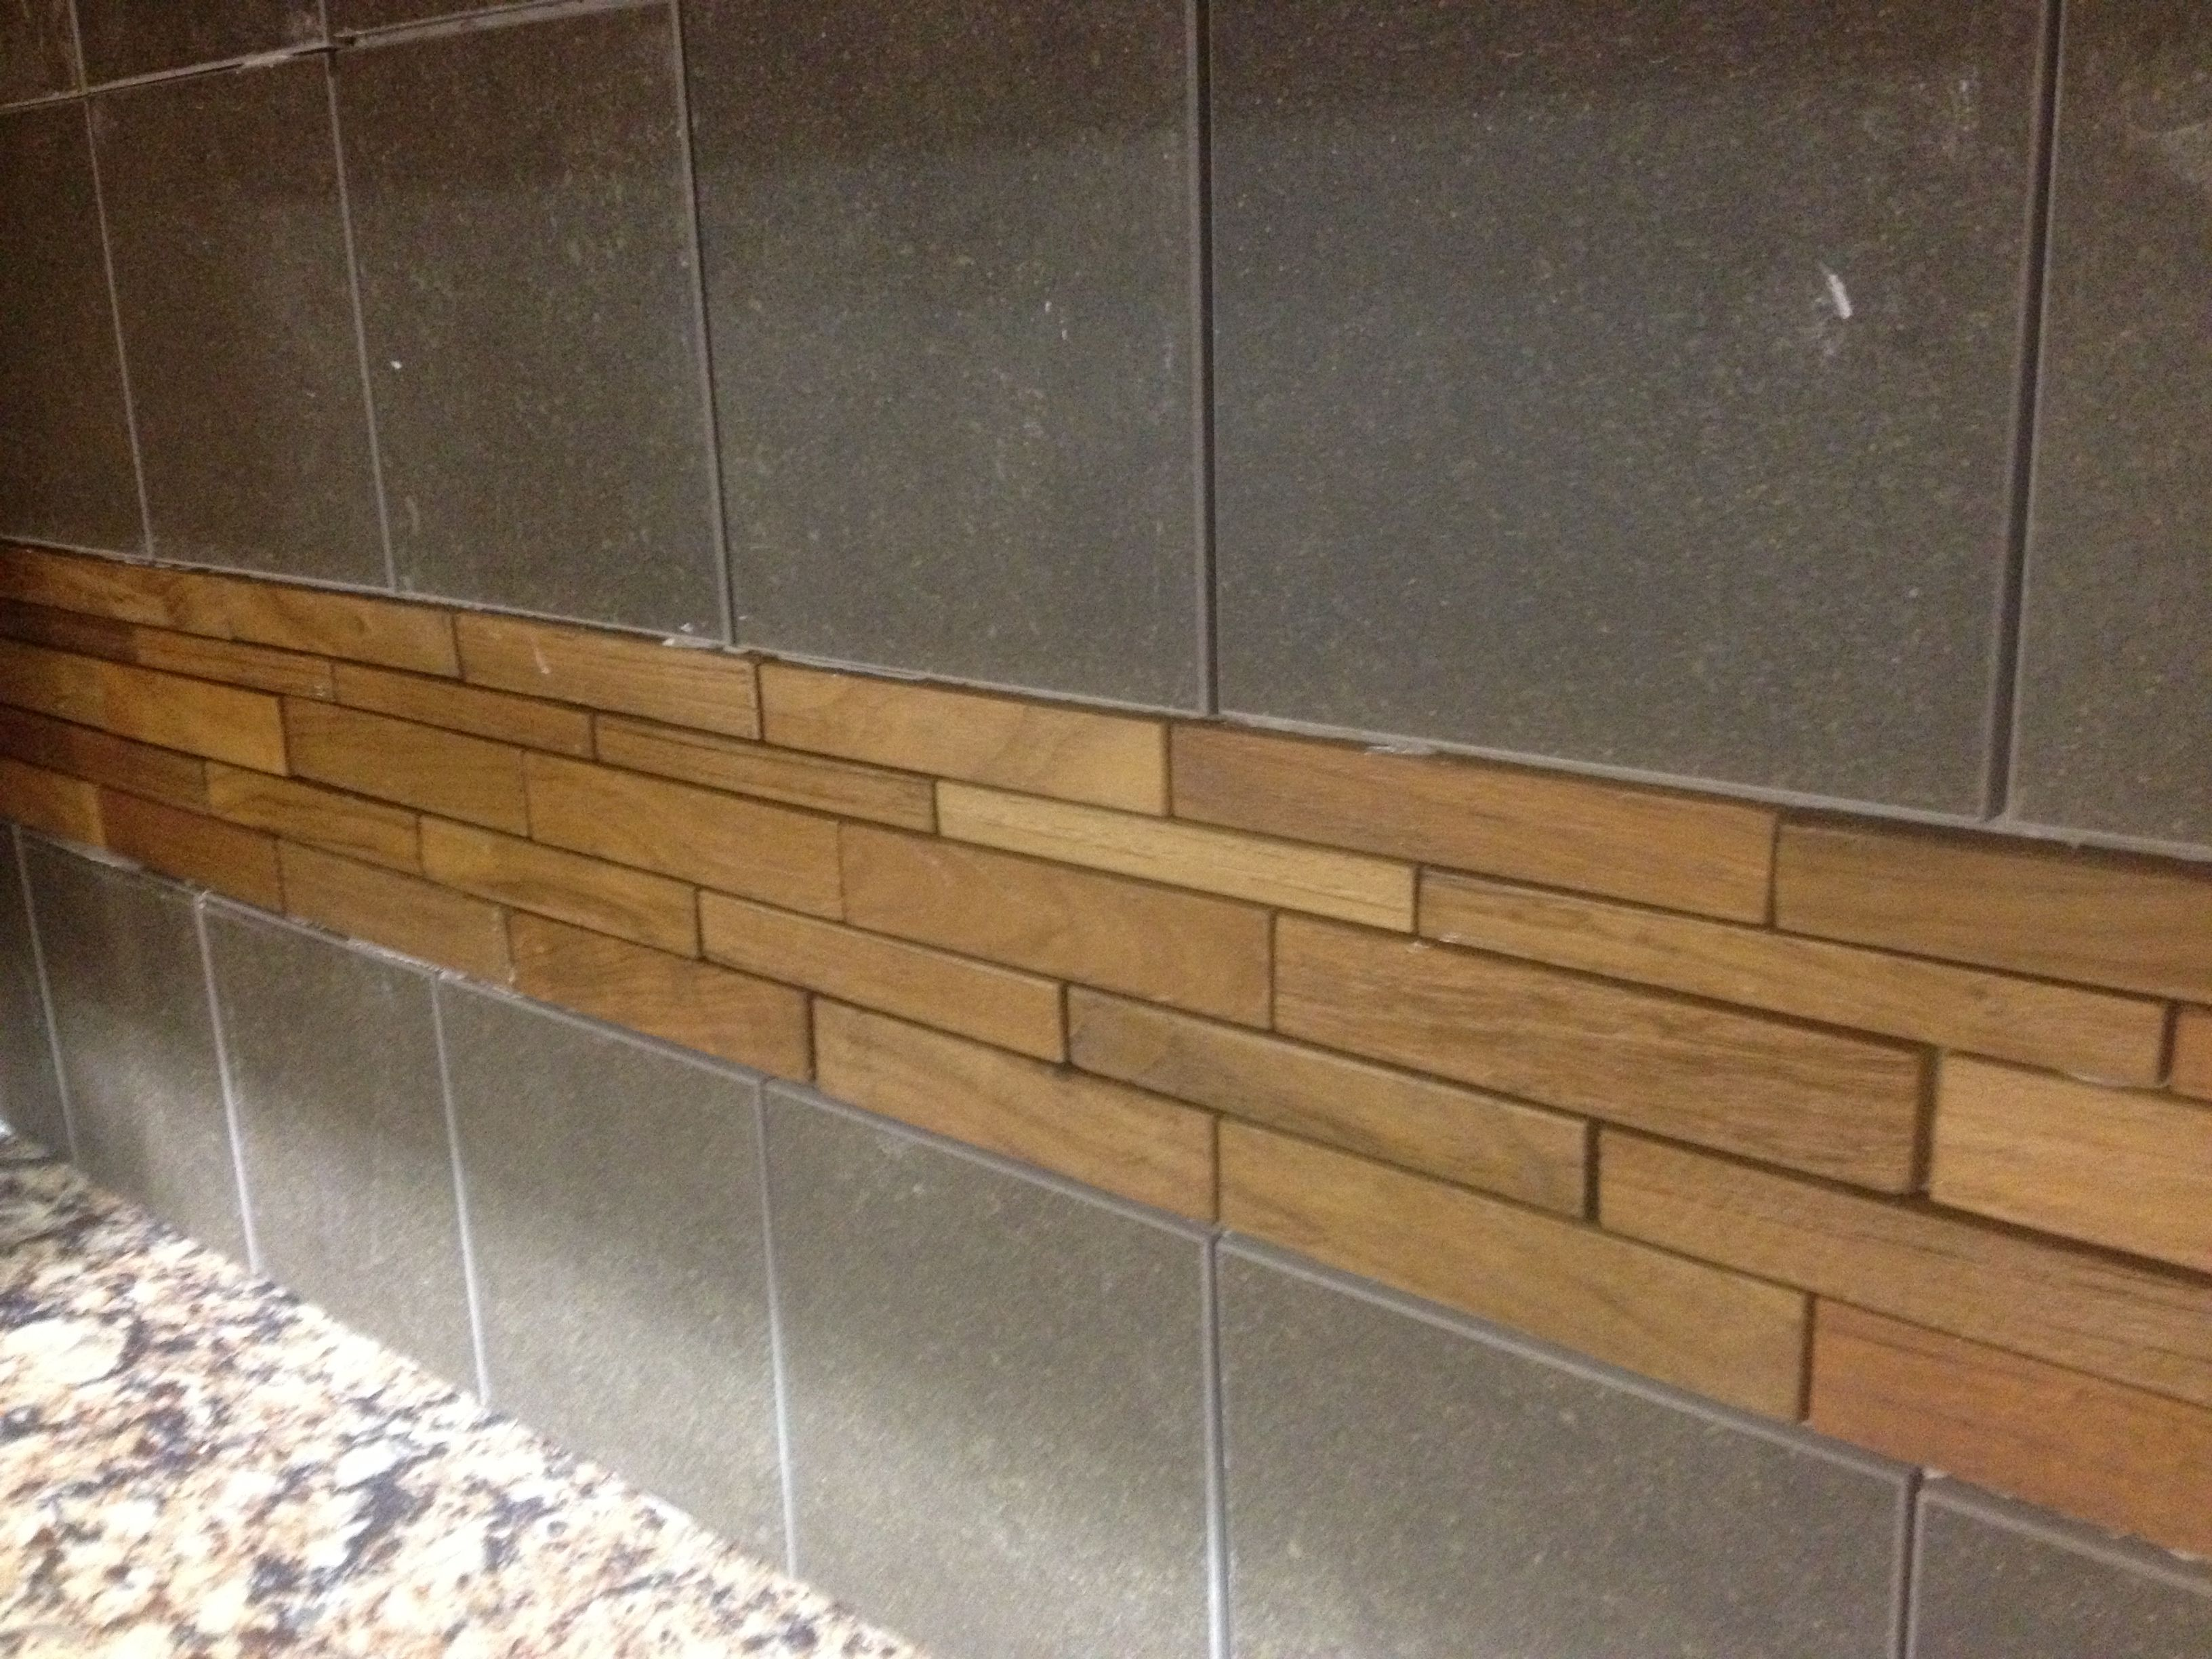 Kitchen interior kitchen beautiful and creative hardwood subway kitchen interior kitchen beautiful and creative hardwood subway kitchen backsplash tile combine cool gray ceramic dailygadgetfo Choice Image